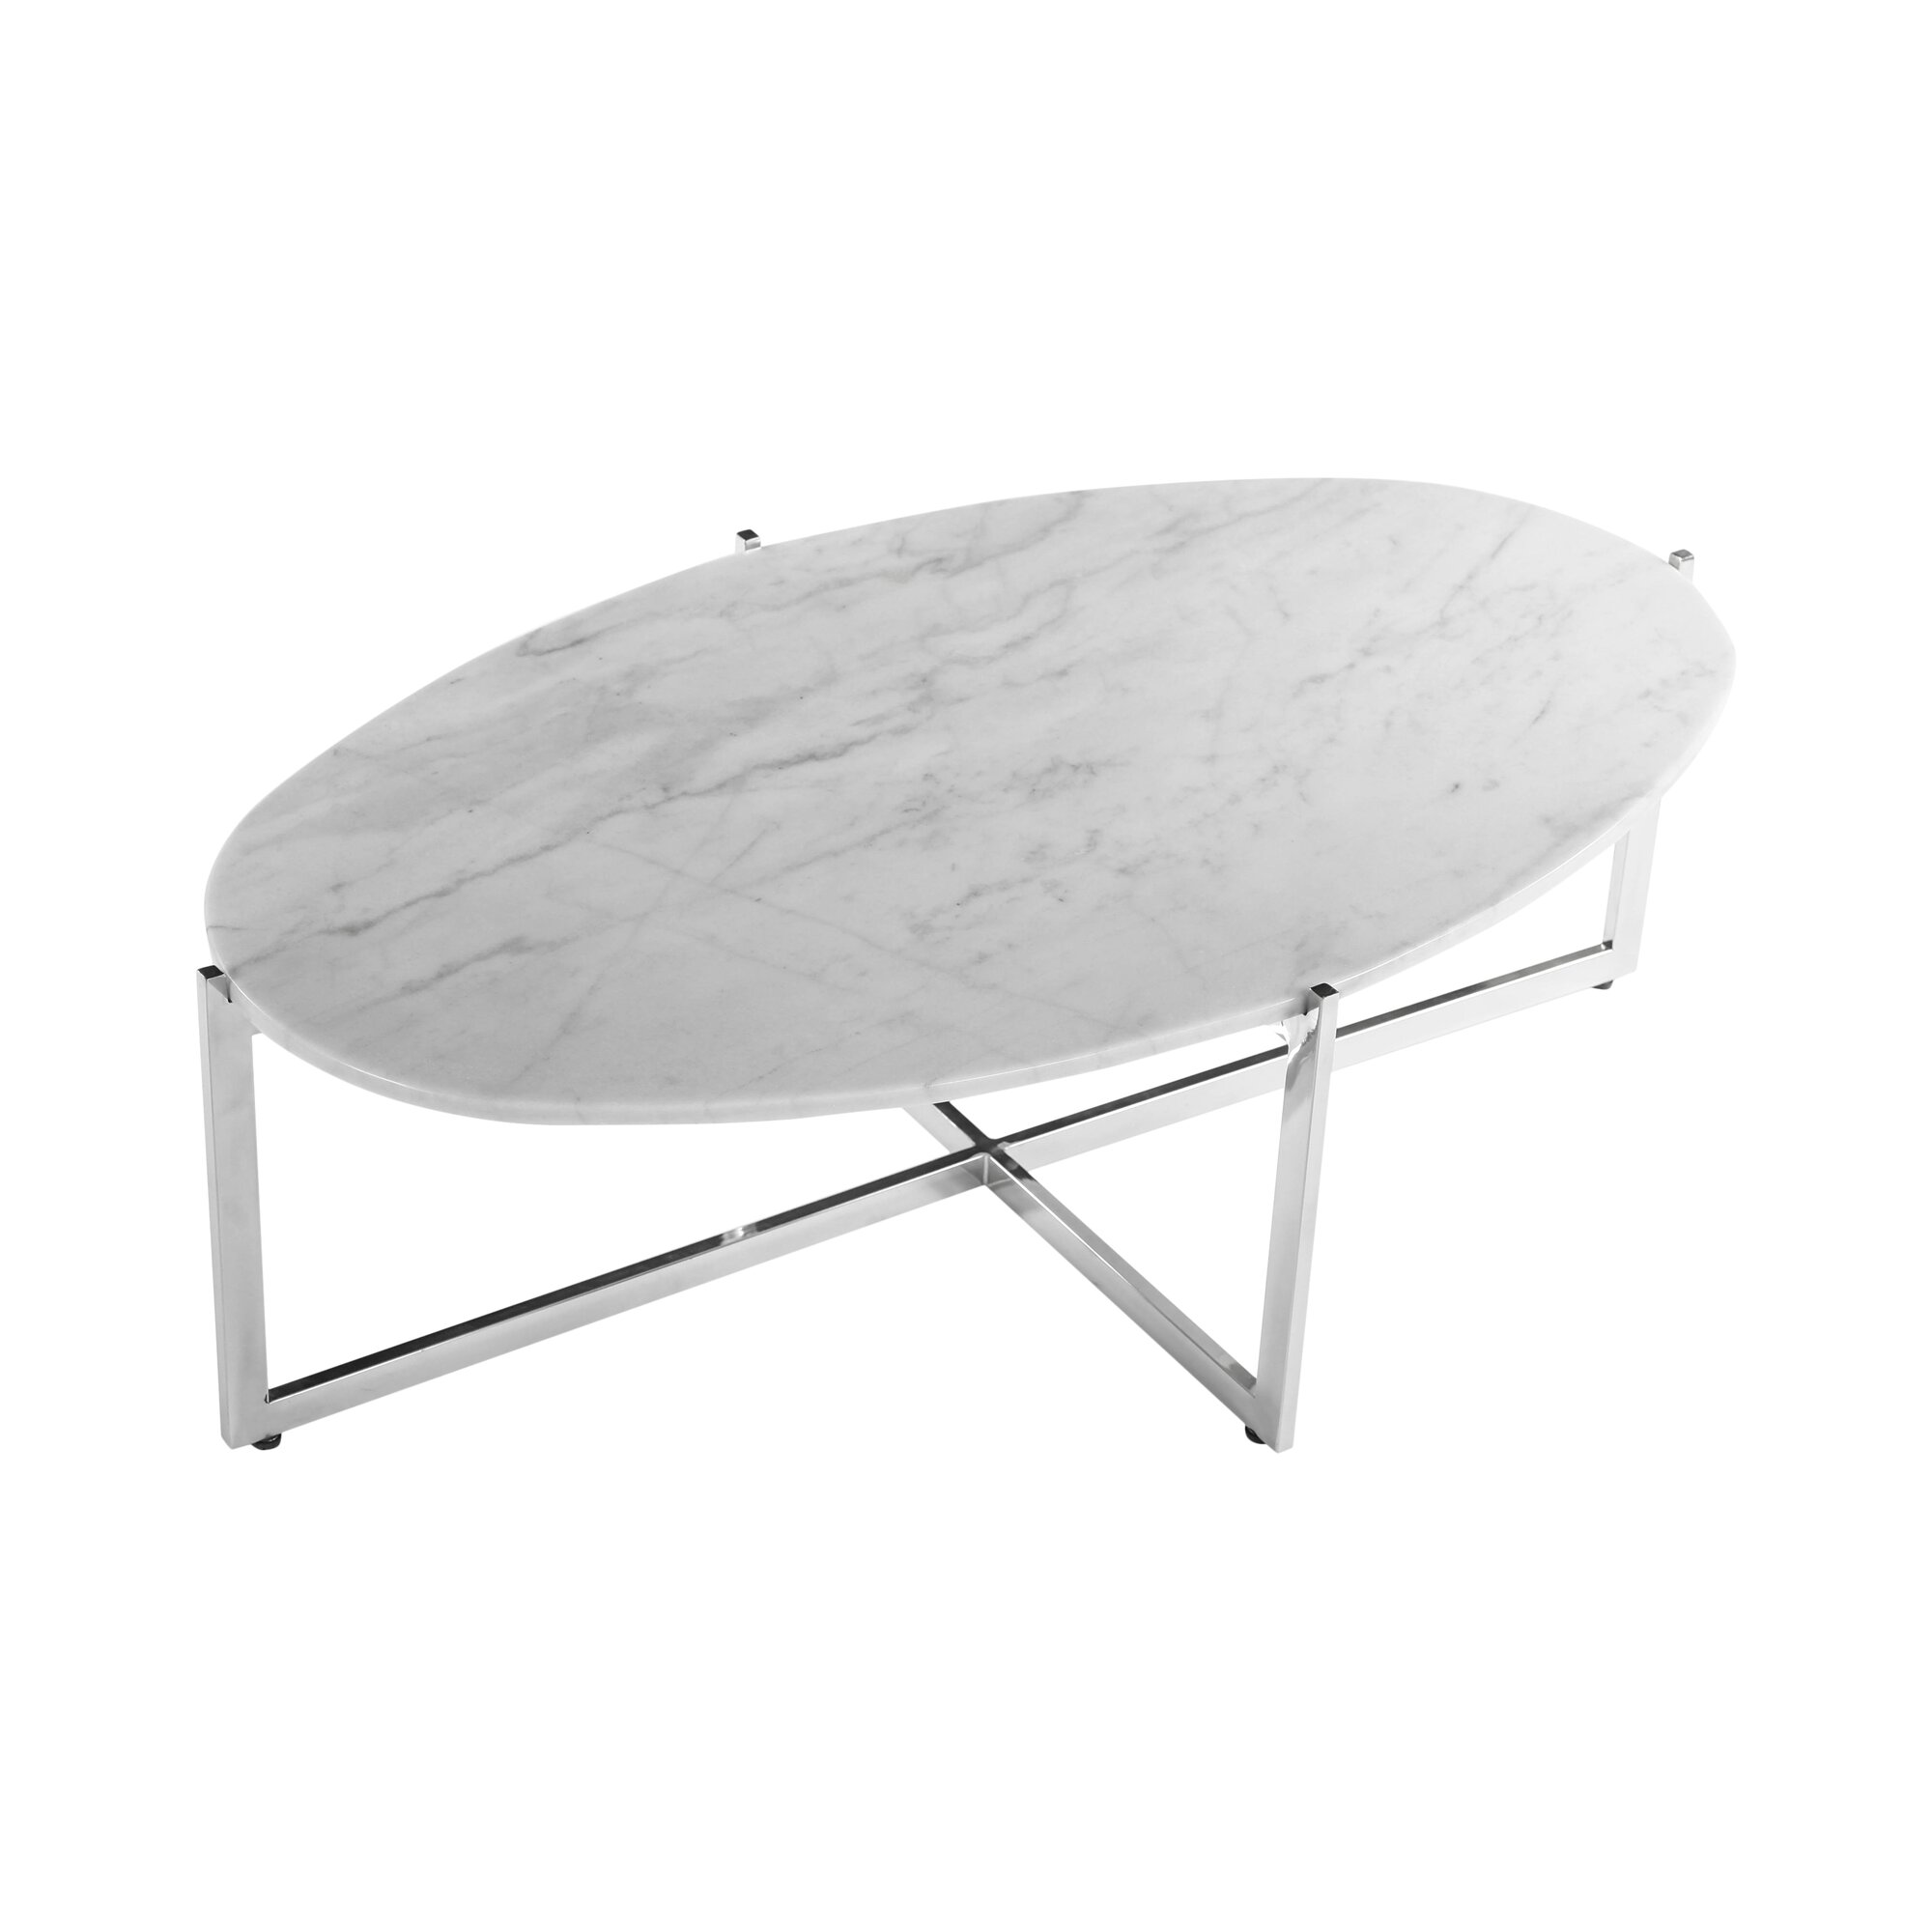 Parker Oval Marble Coffee Table Reviews: Oval Coffee Table & Reviews